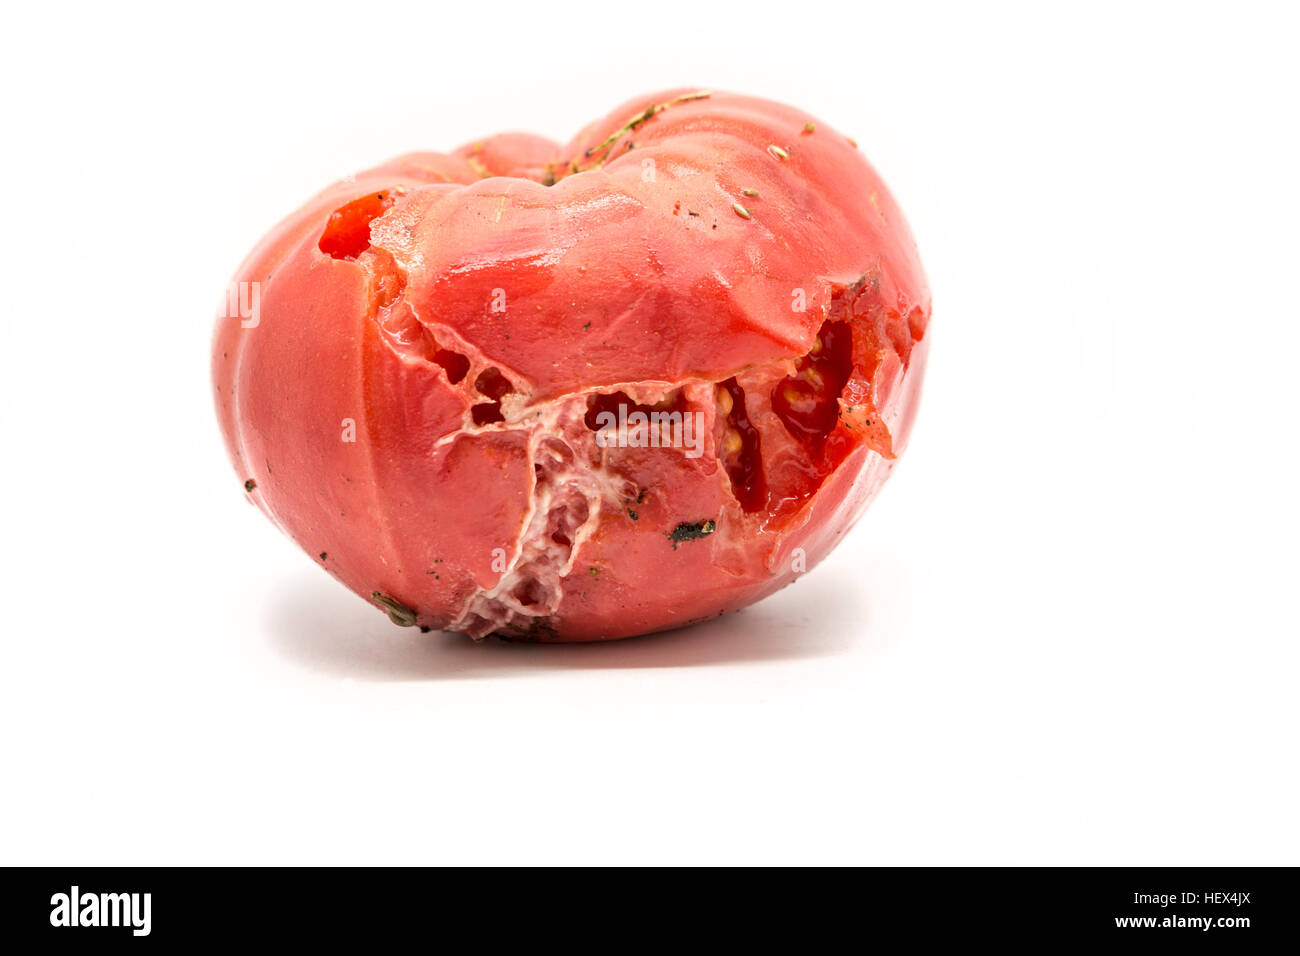 Single rotten tomato isolated on white stock photo 129652178 alamy single rotten tomato isolated on white ccuart Gallery